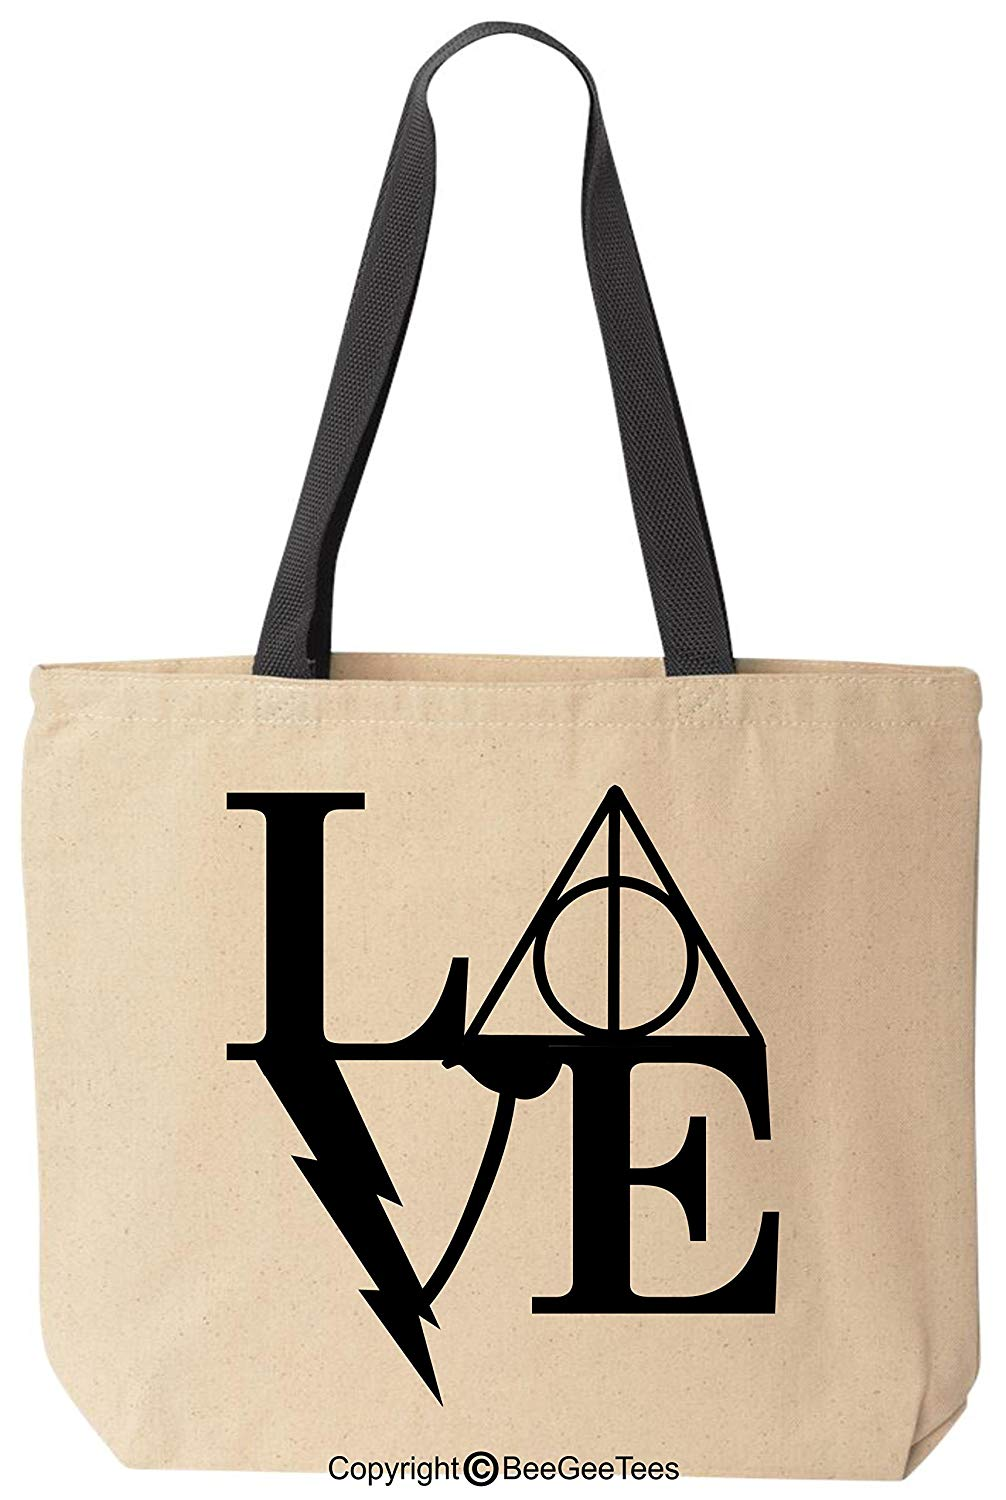 Love Always Canvas Wizard Witch Harry Potter Inspired Tote Reusable Gift Bag by BeeGeeTees